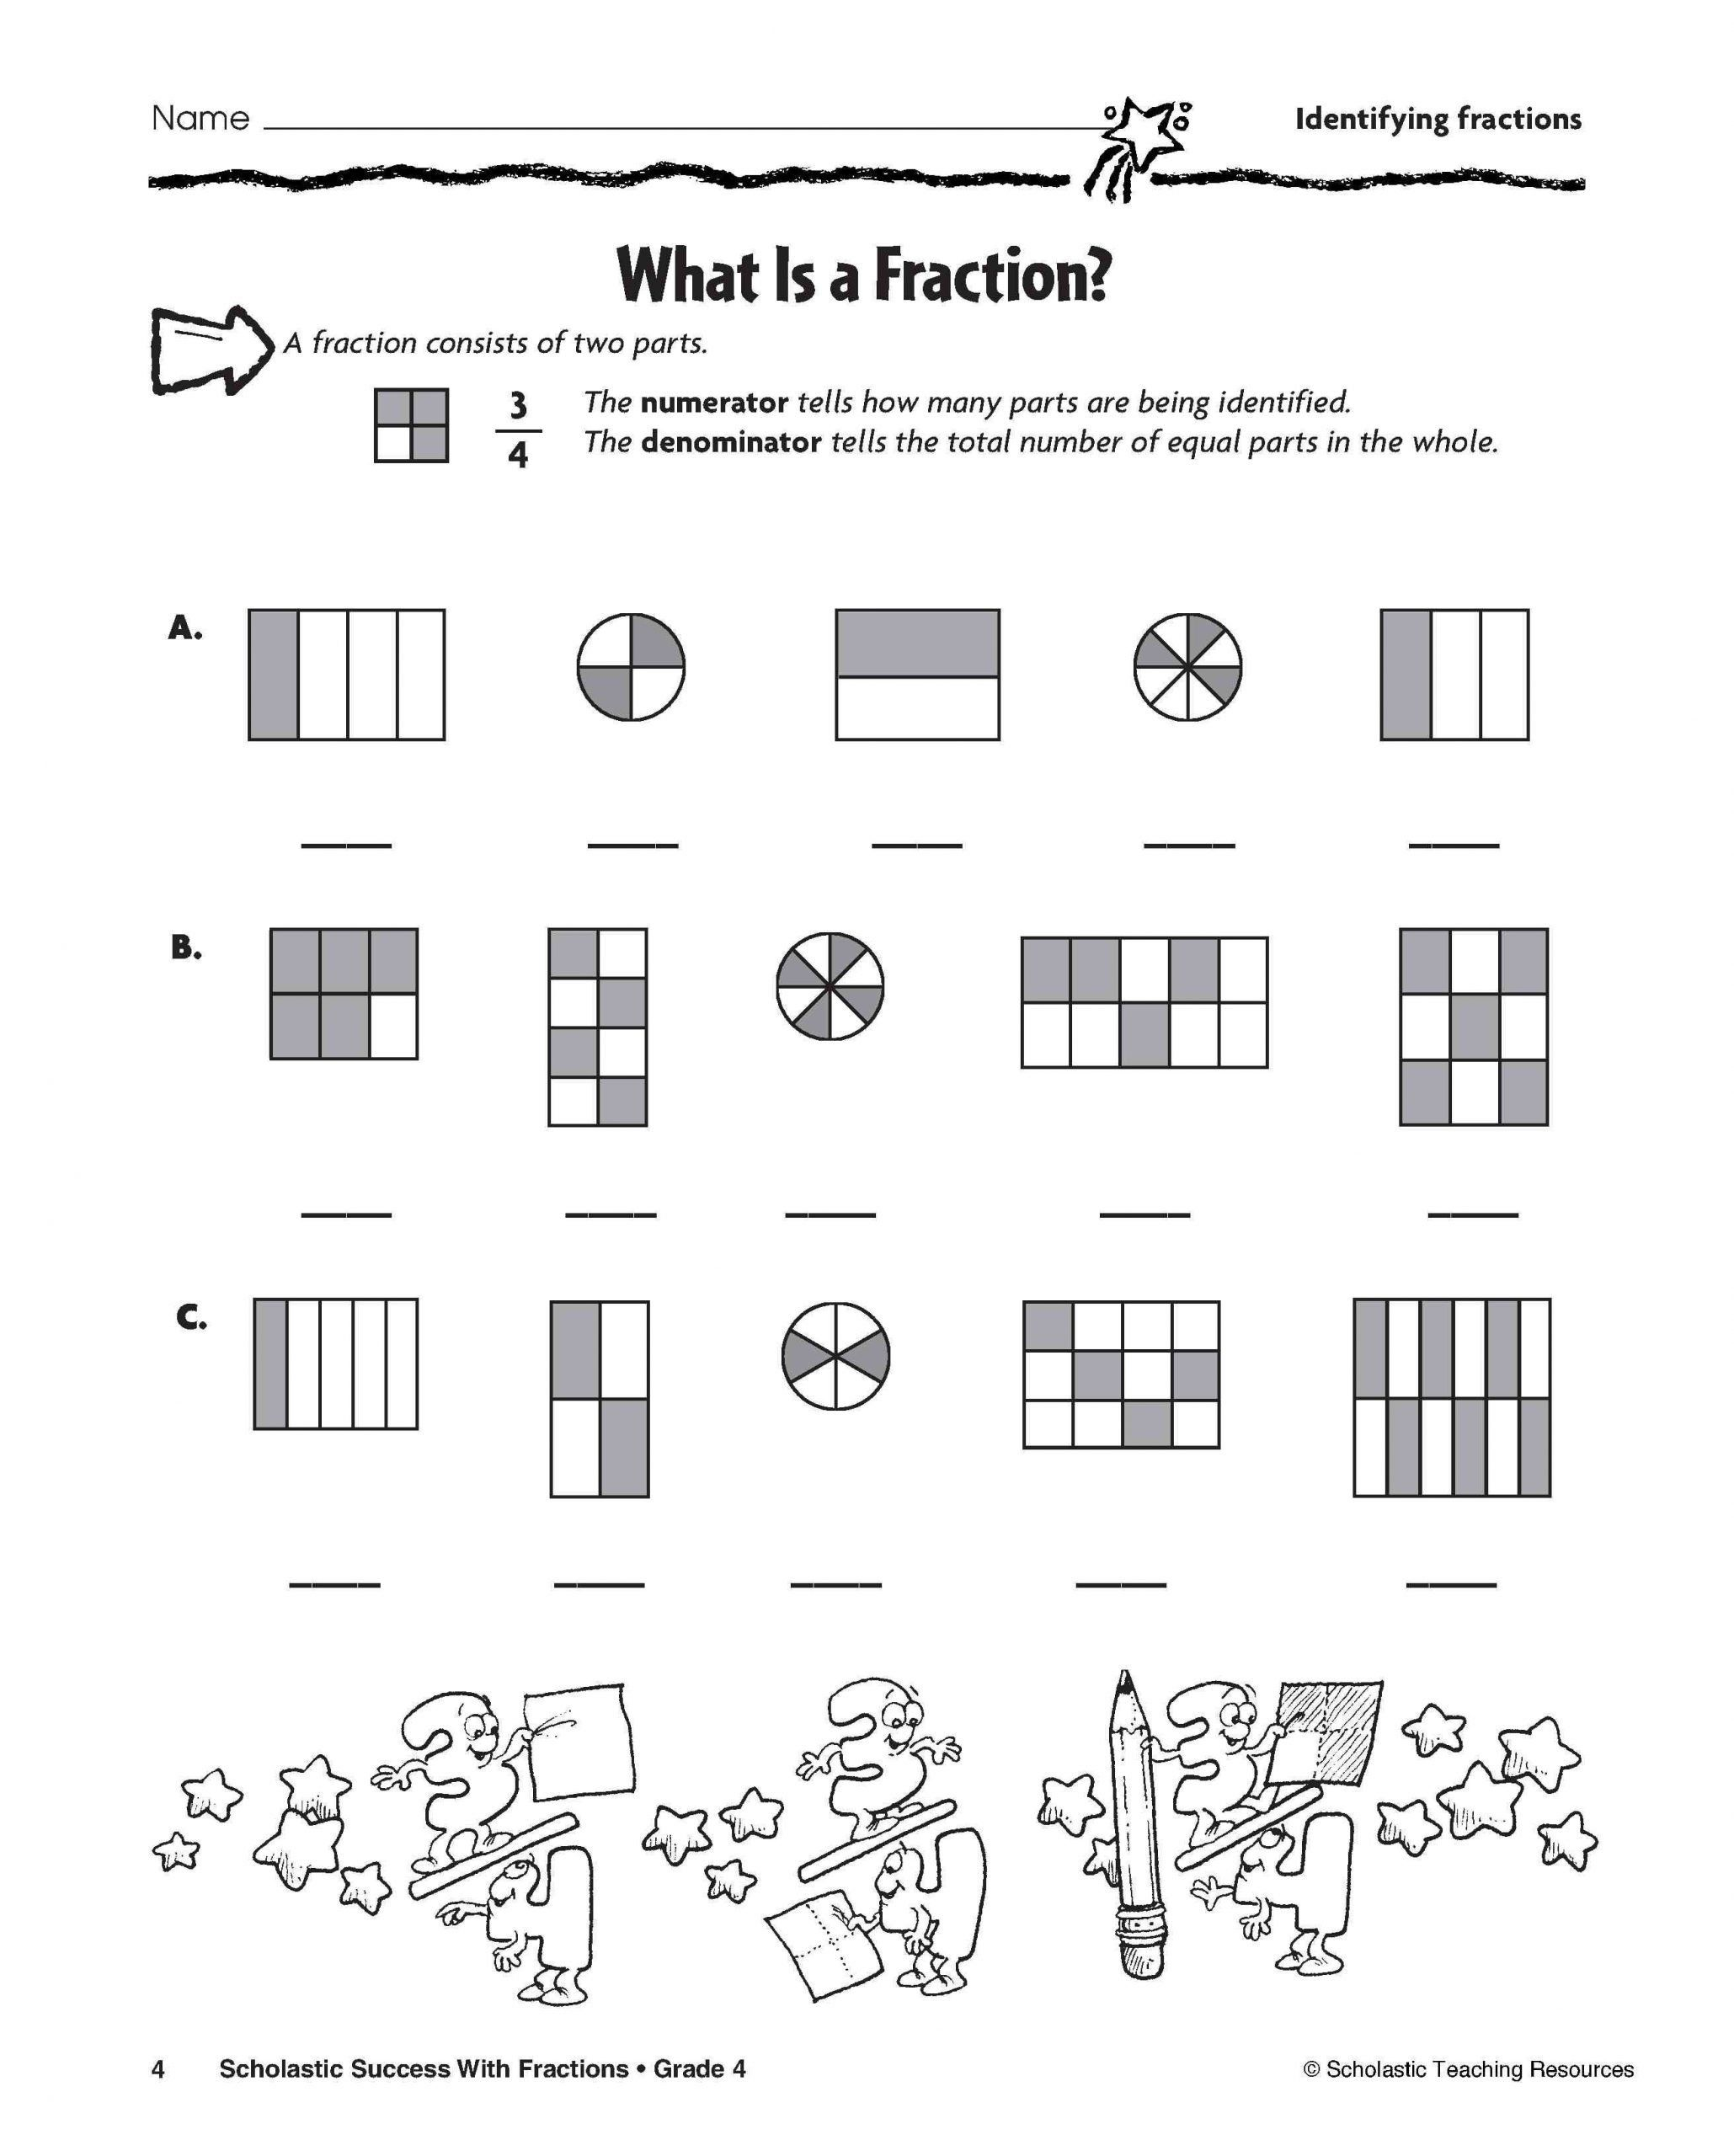 Scholastic Math Worksheets Critical Thinking Activities